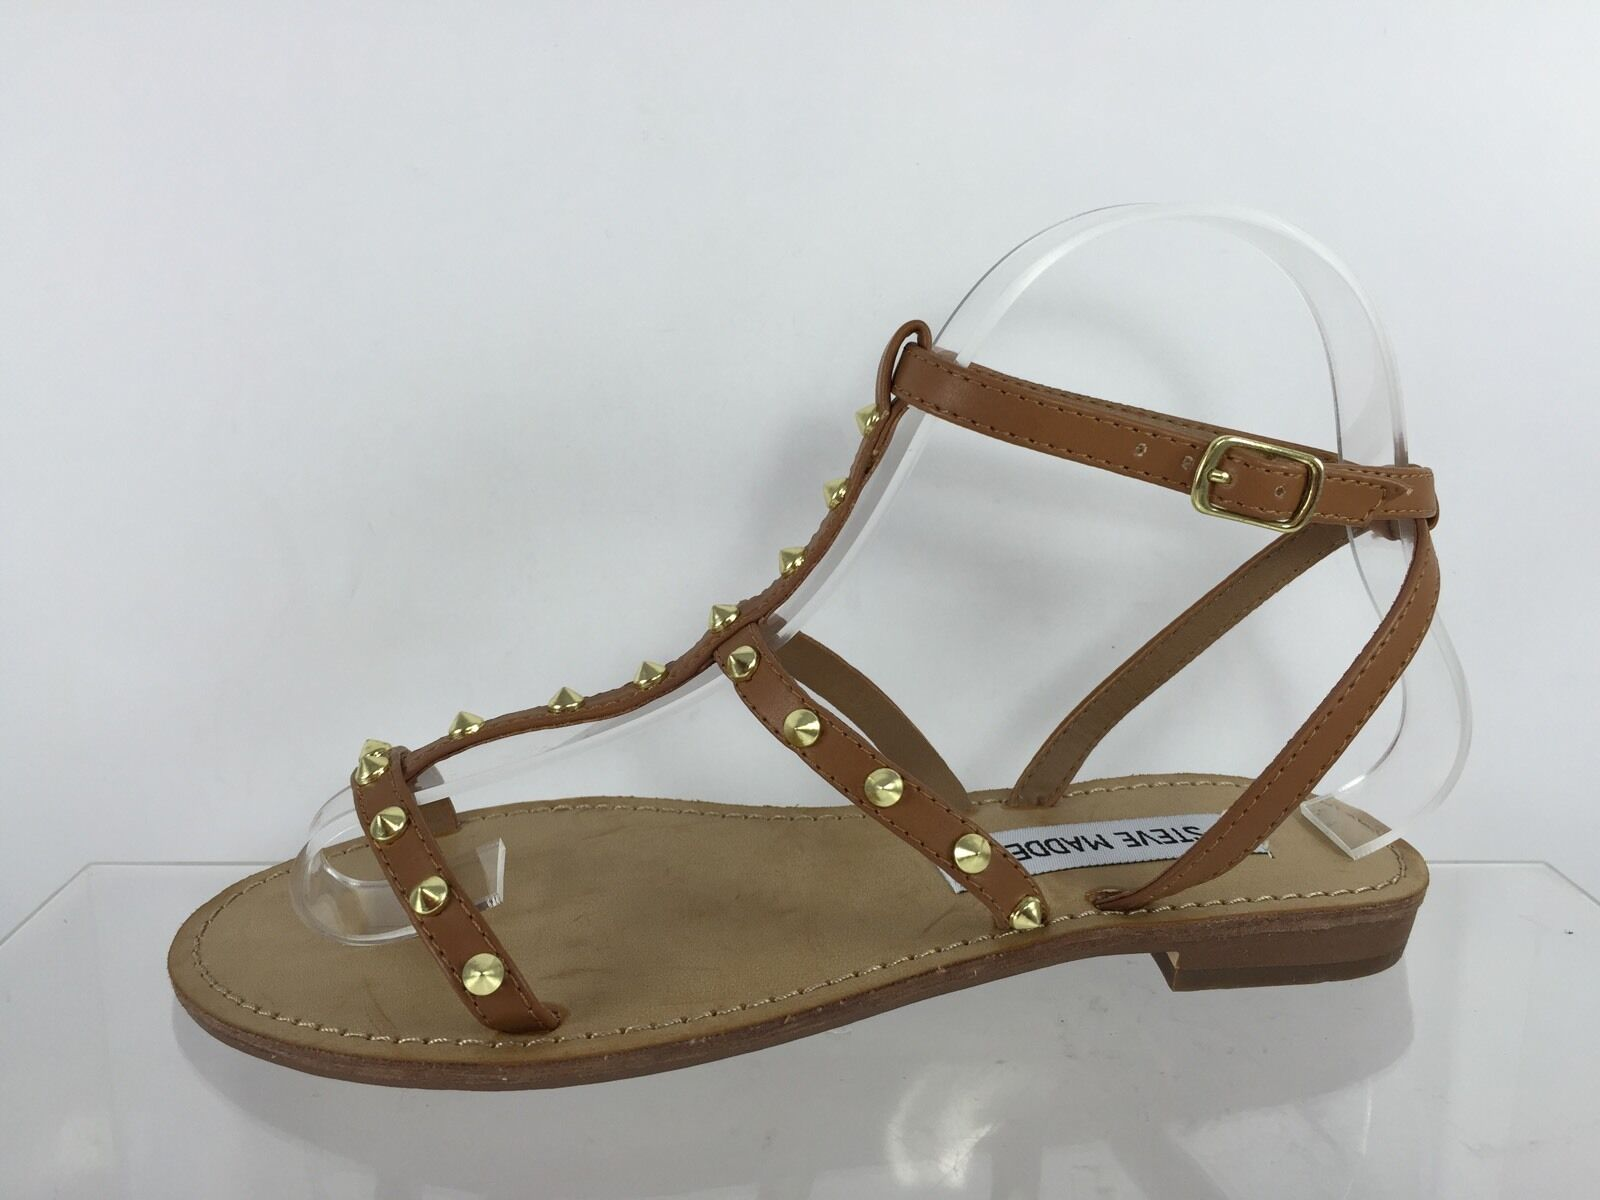 Steve Sandals Madden Womens Studded Brown Sandals Steve 6.5 941caa